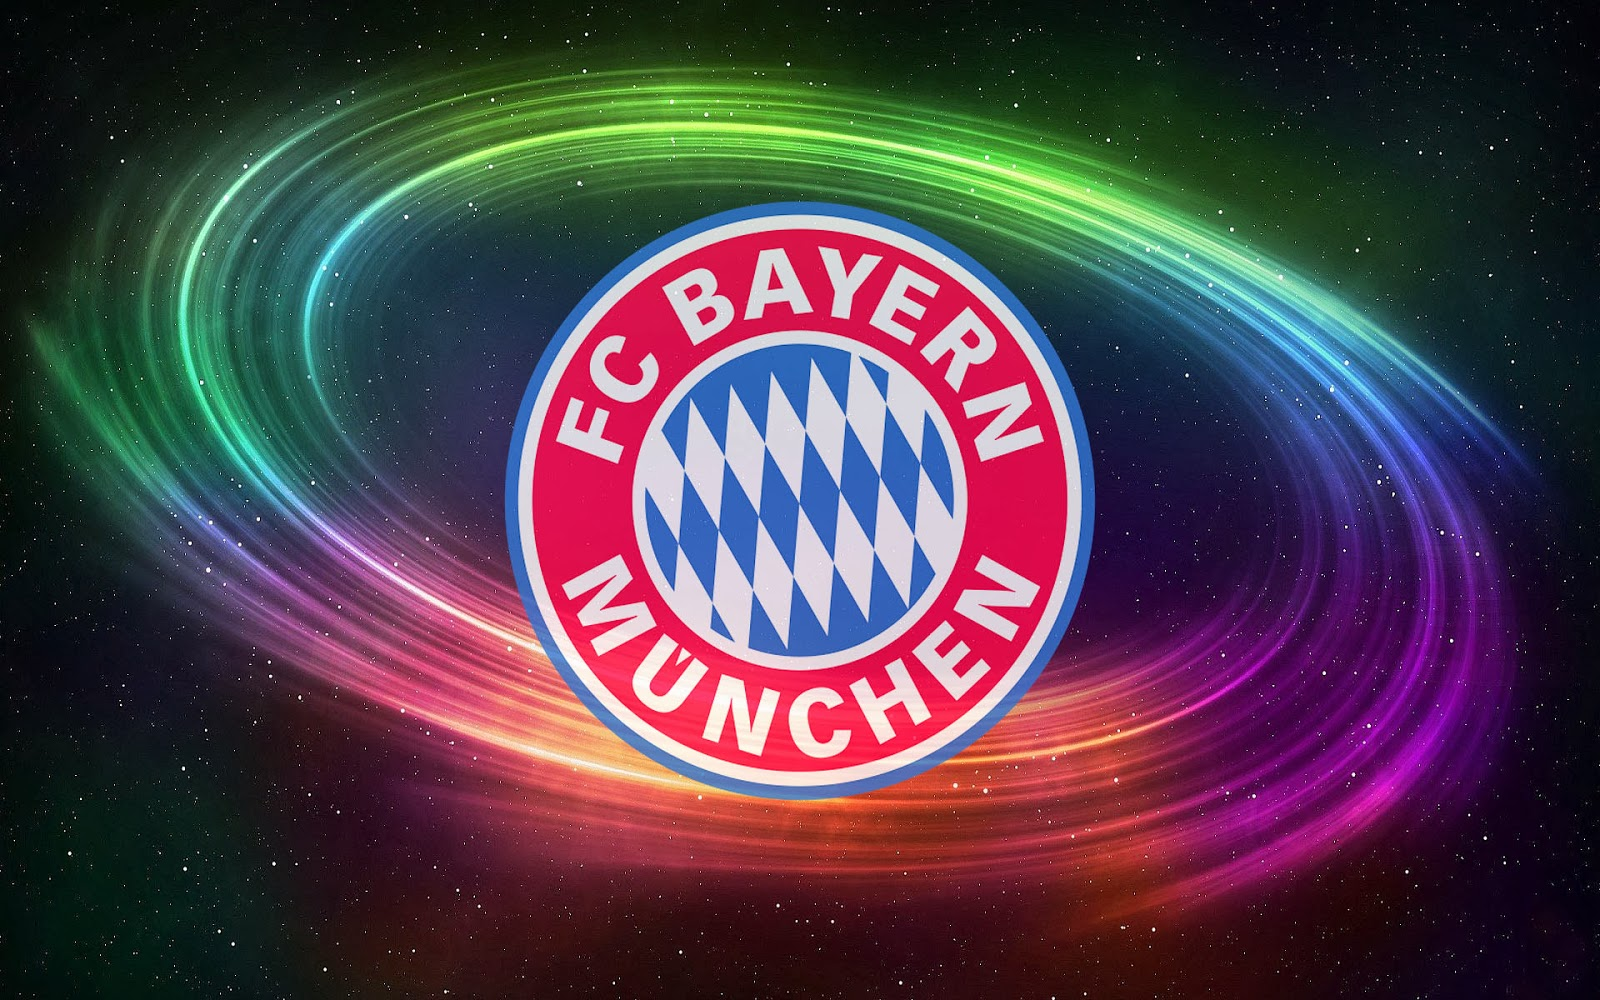 46 Bayern Munich Logo Wallpaper On Wallpapersafari